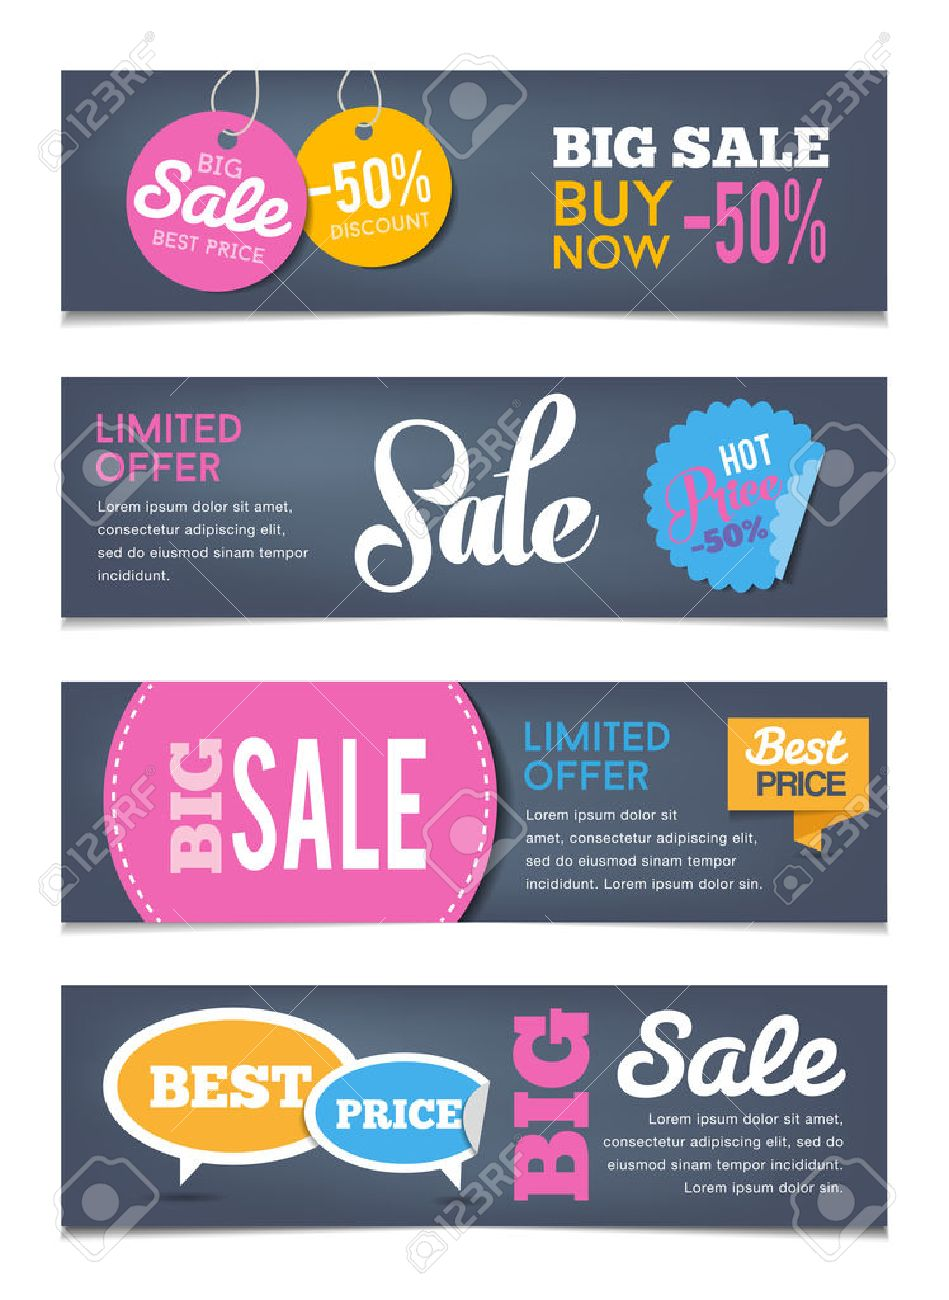 Sales Banners Design - Can Illustrate Sales Events, Shopping ...